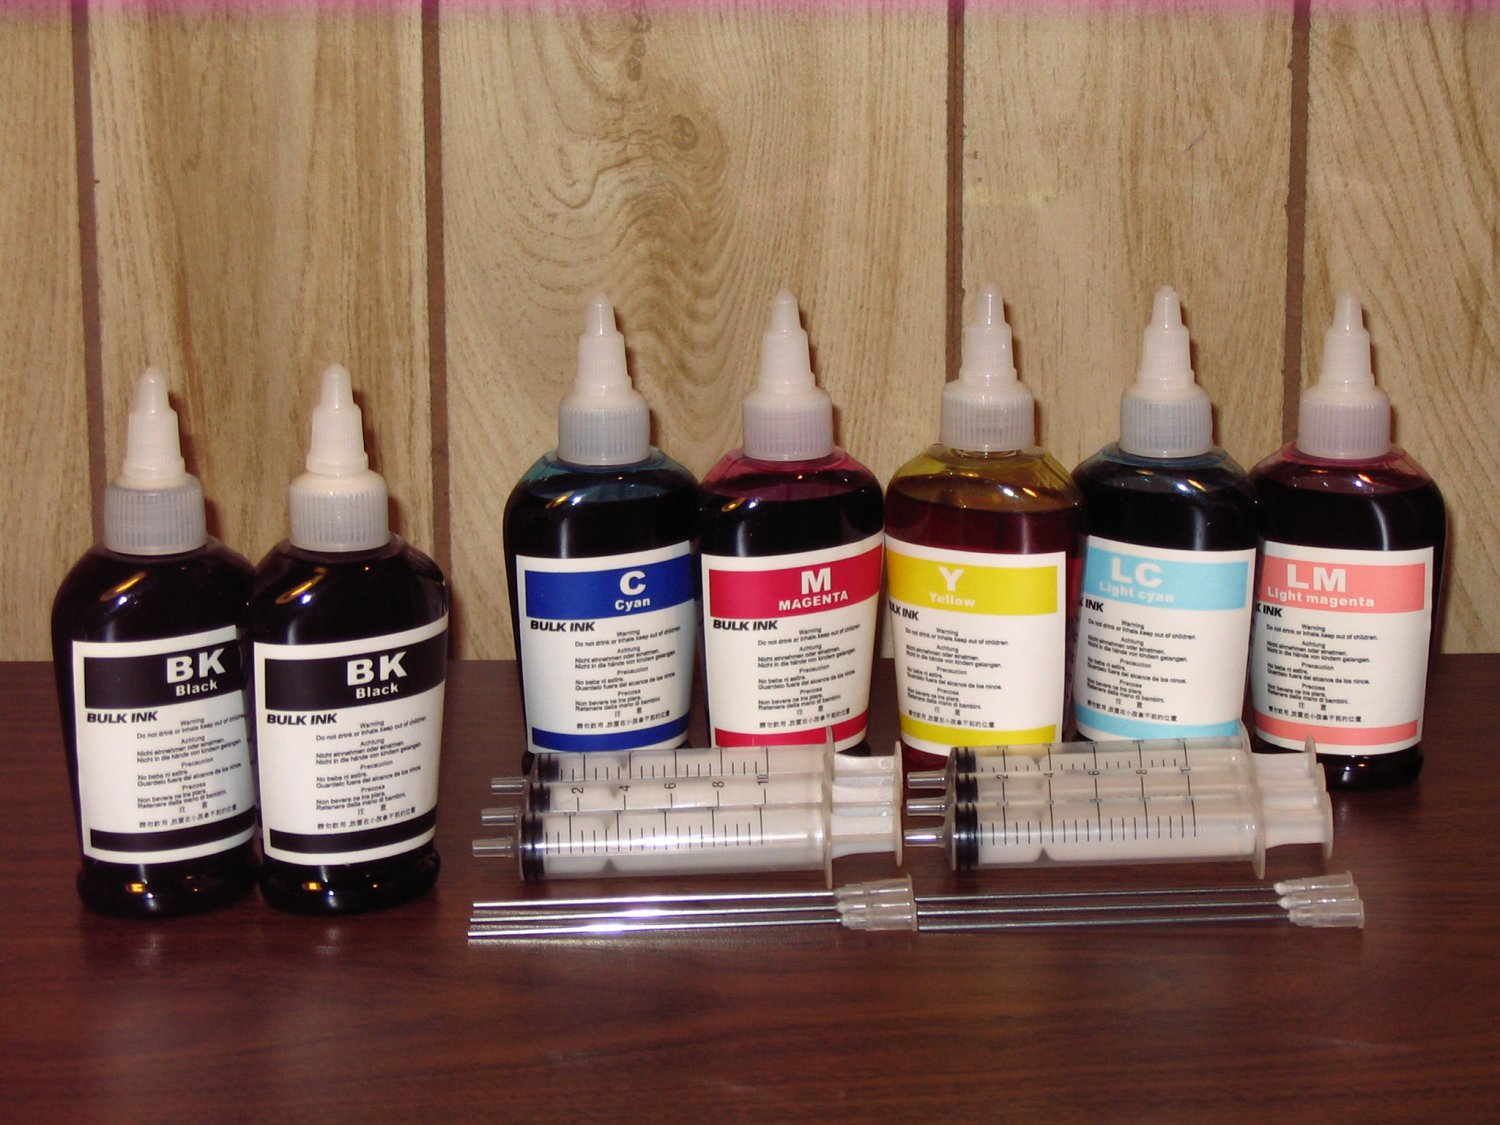 Bulk refill ink for HP ink printer , 100ml x 7 bottles (2BK, 1C, 1M, 1Y, 1LC, 1LM)